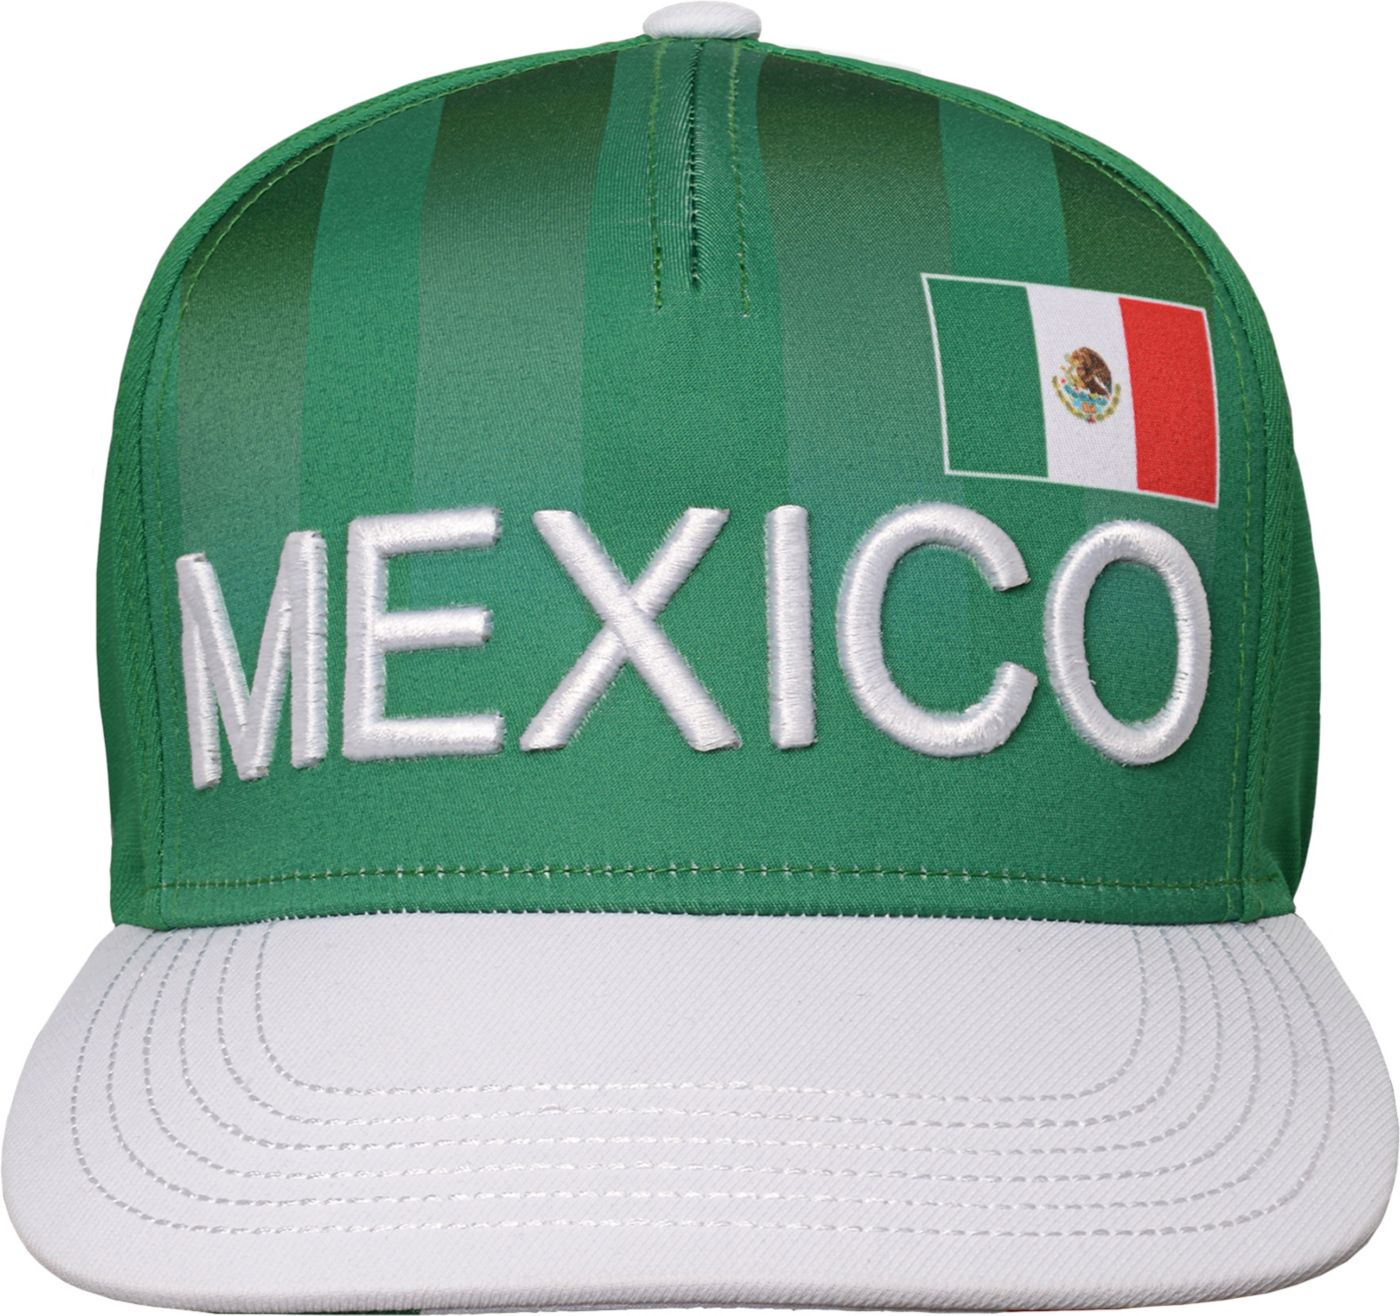 Outerstuff Youth Mexico Hook Flag Green Snapback Adjustable Hat